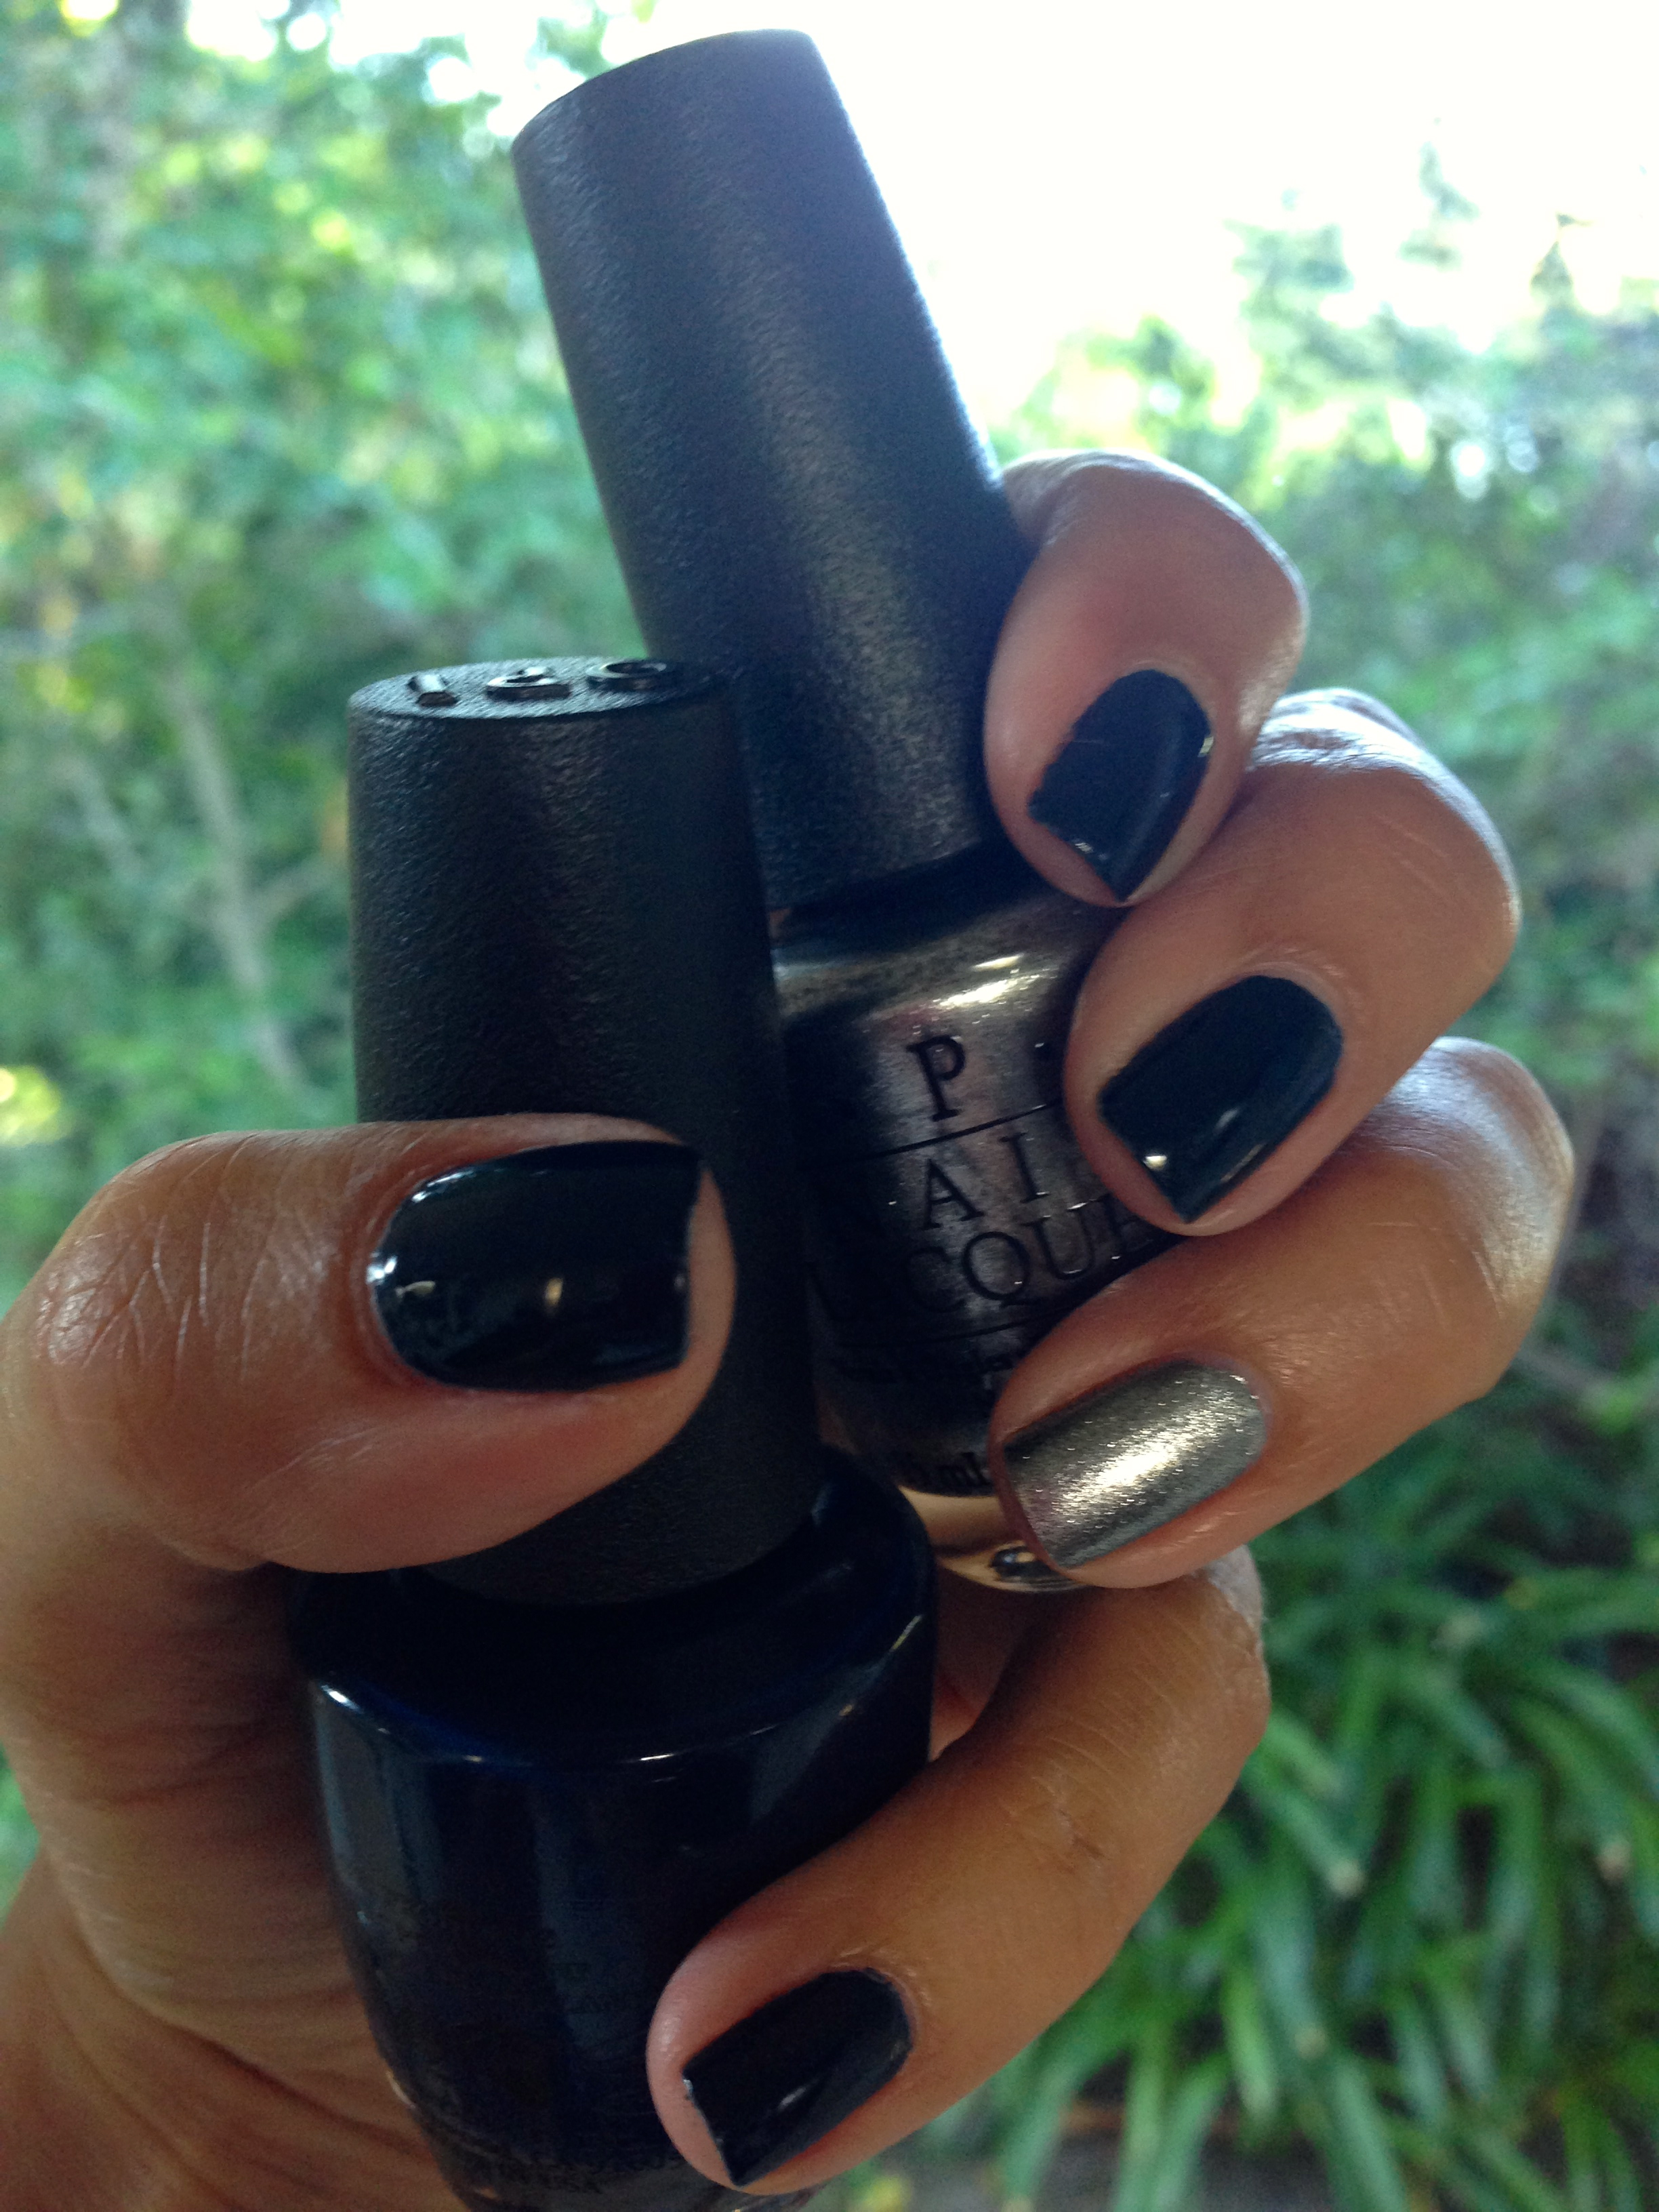 Deep Blue Nail Color: OPI, Incognito in Sausalito, $9   Silver Accent Nail Color: OPI, Havent the Foggiest, $9